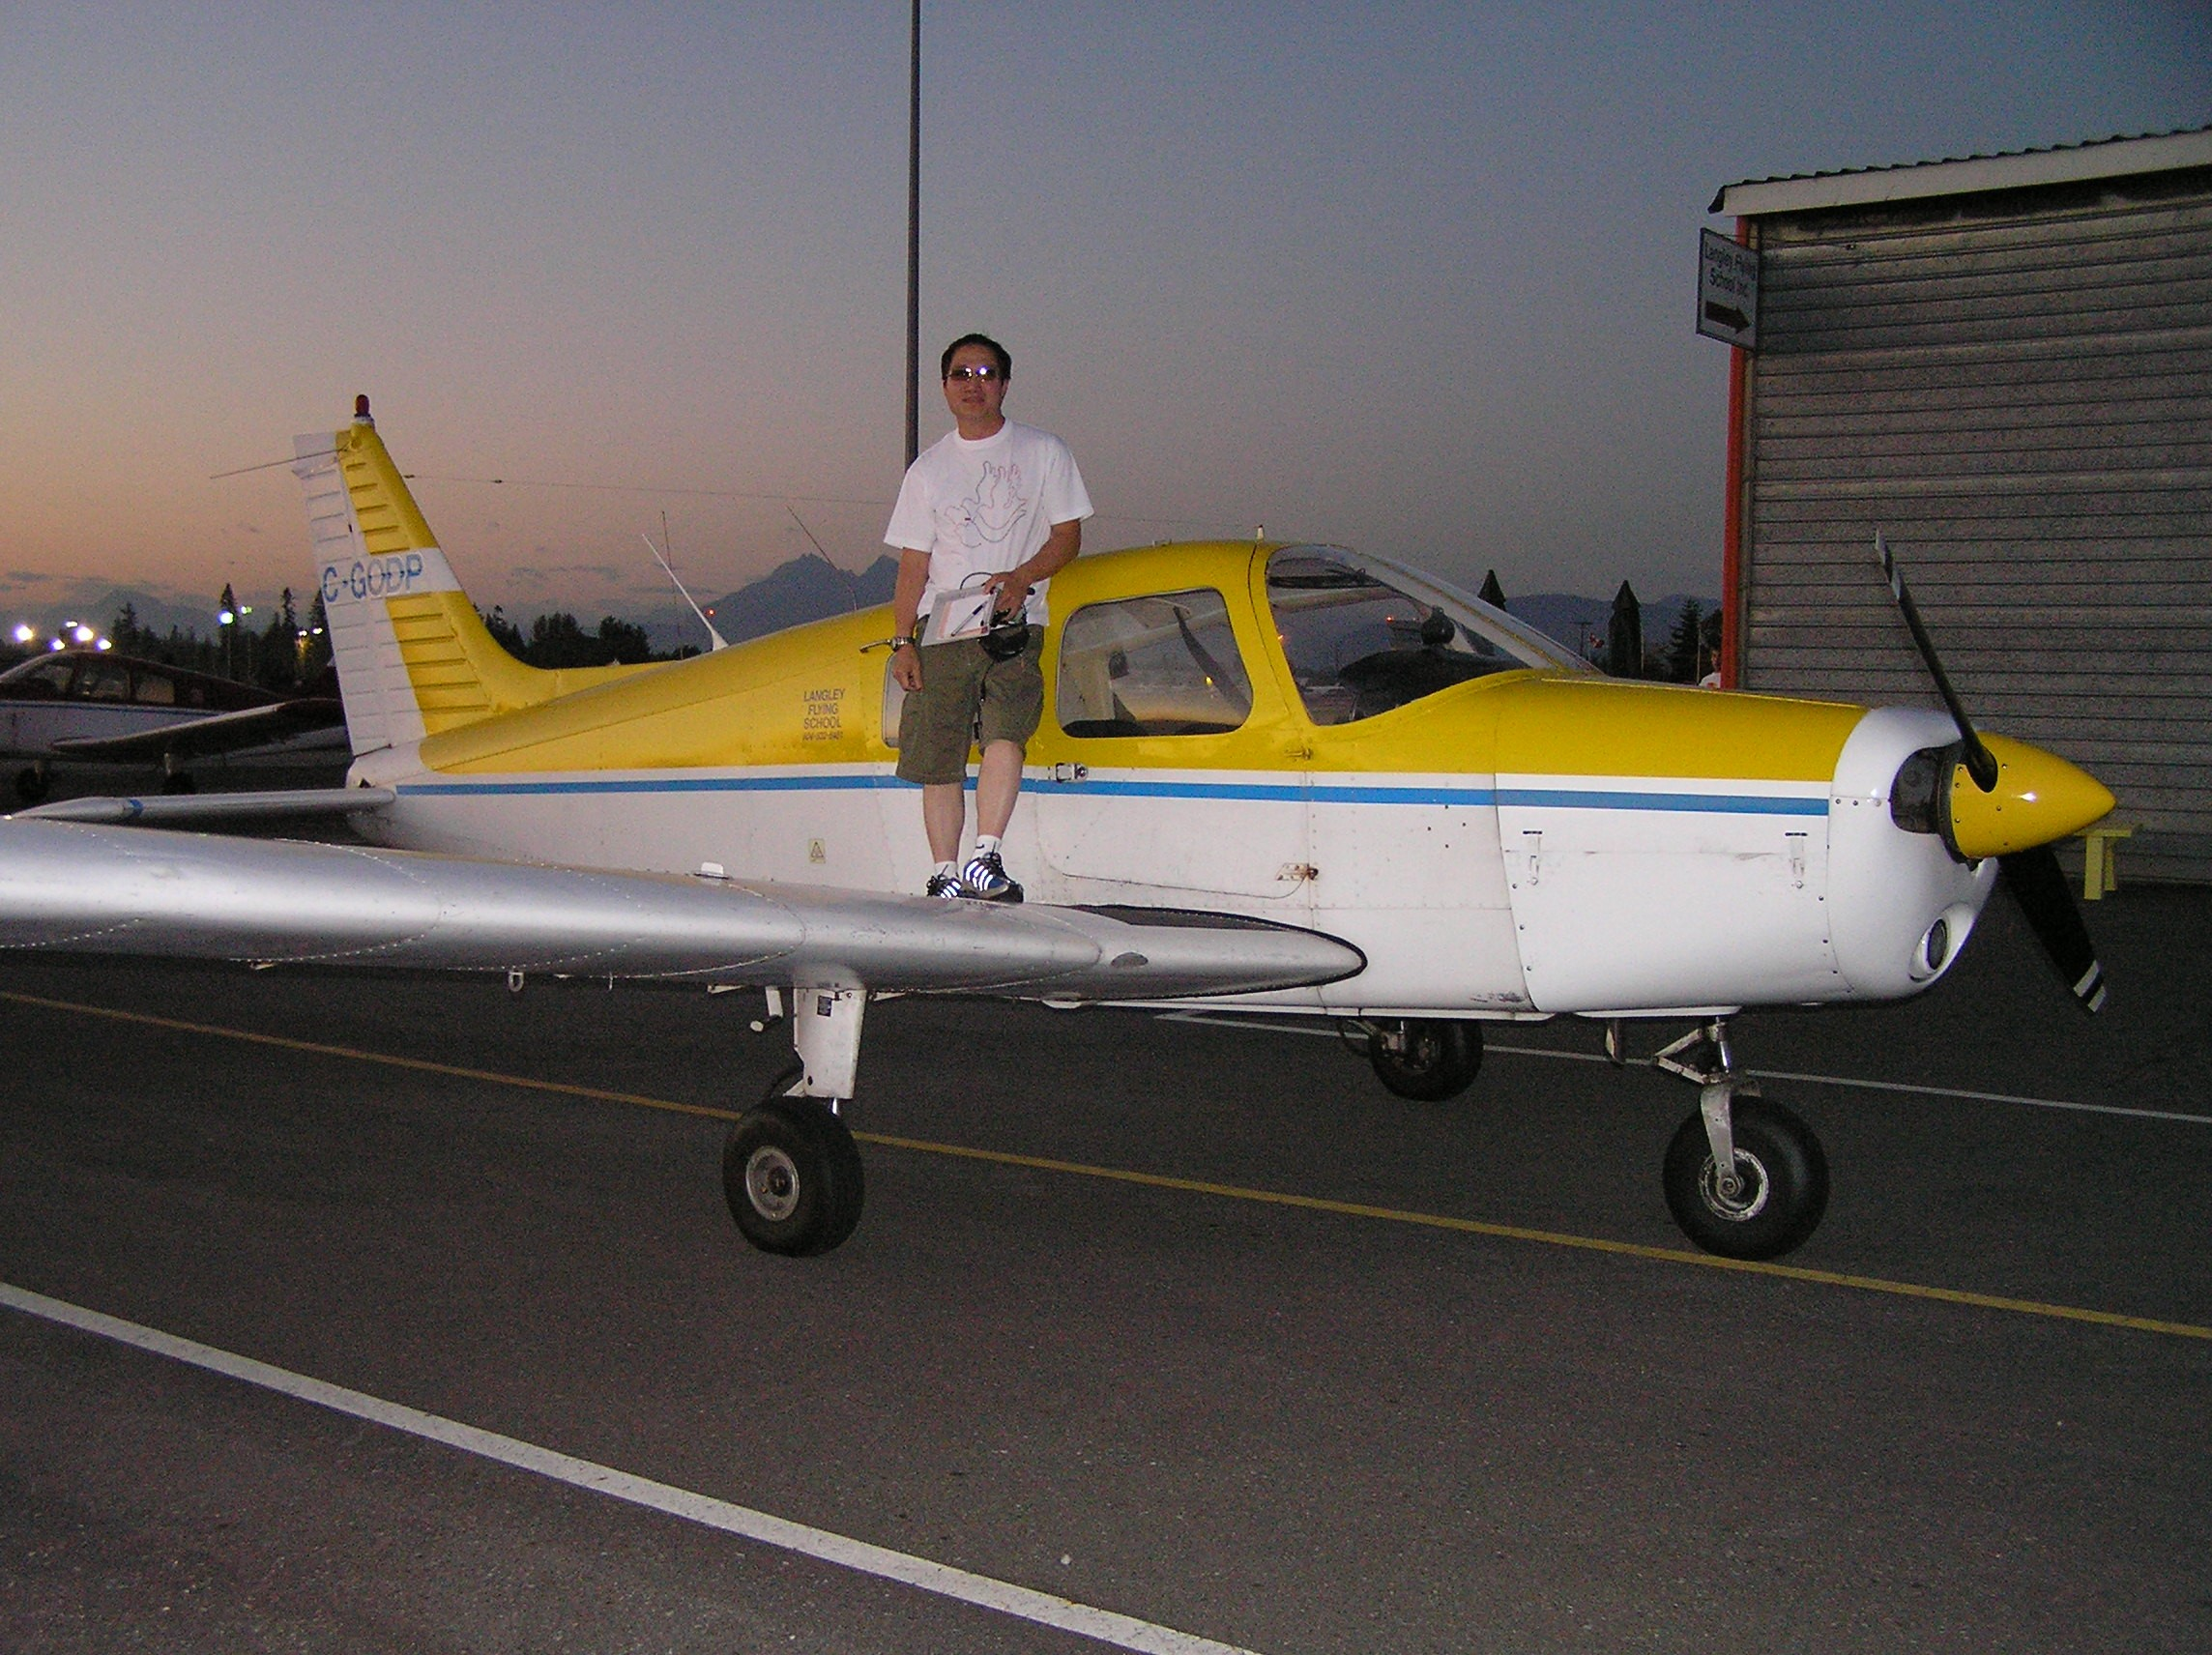 Frederick Yim after completing his First Solo Flight in Cherokee GODP on August 26, 2006, Langley Flying School.